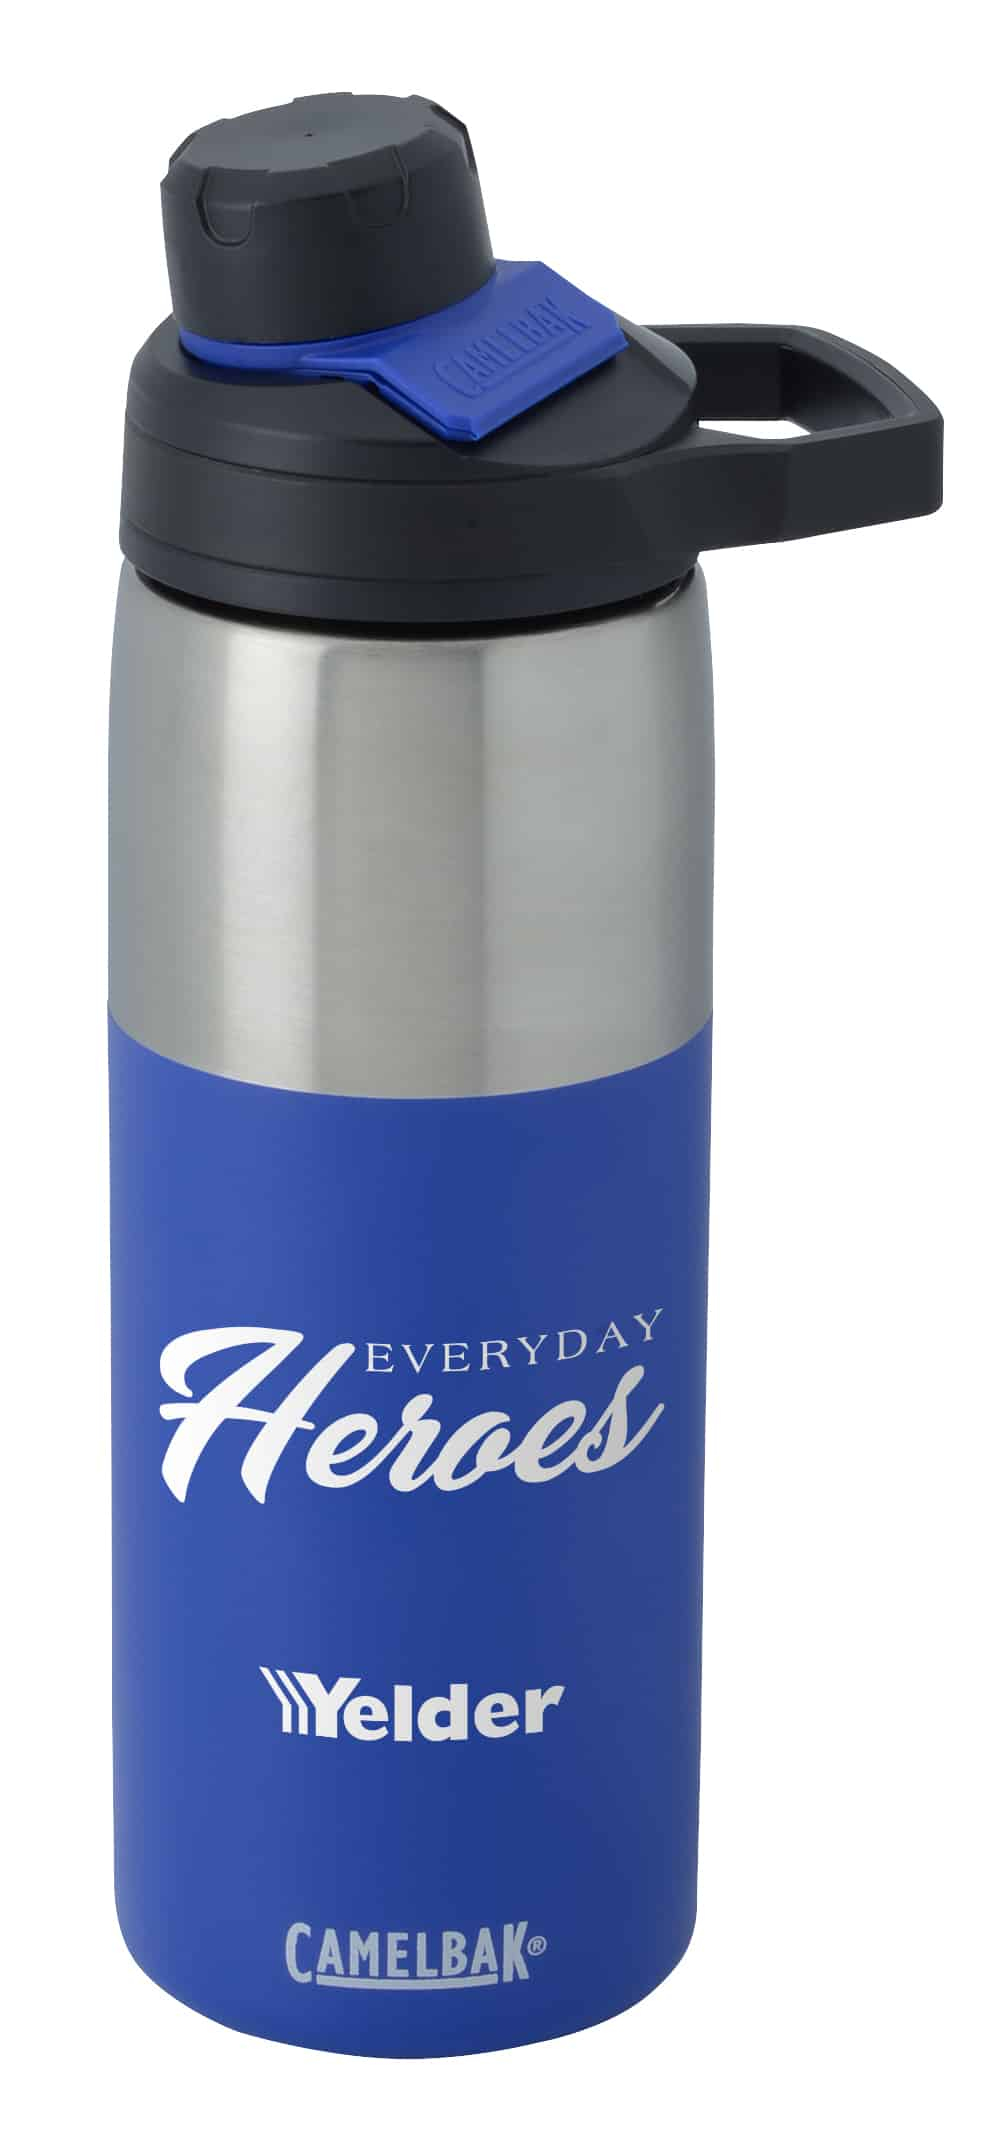 A blue and silver CamelBak Chute Mag Stainless Vacuum Bottle.